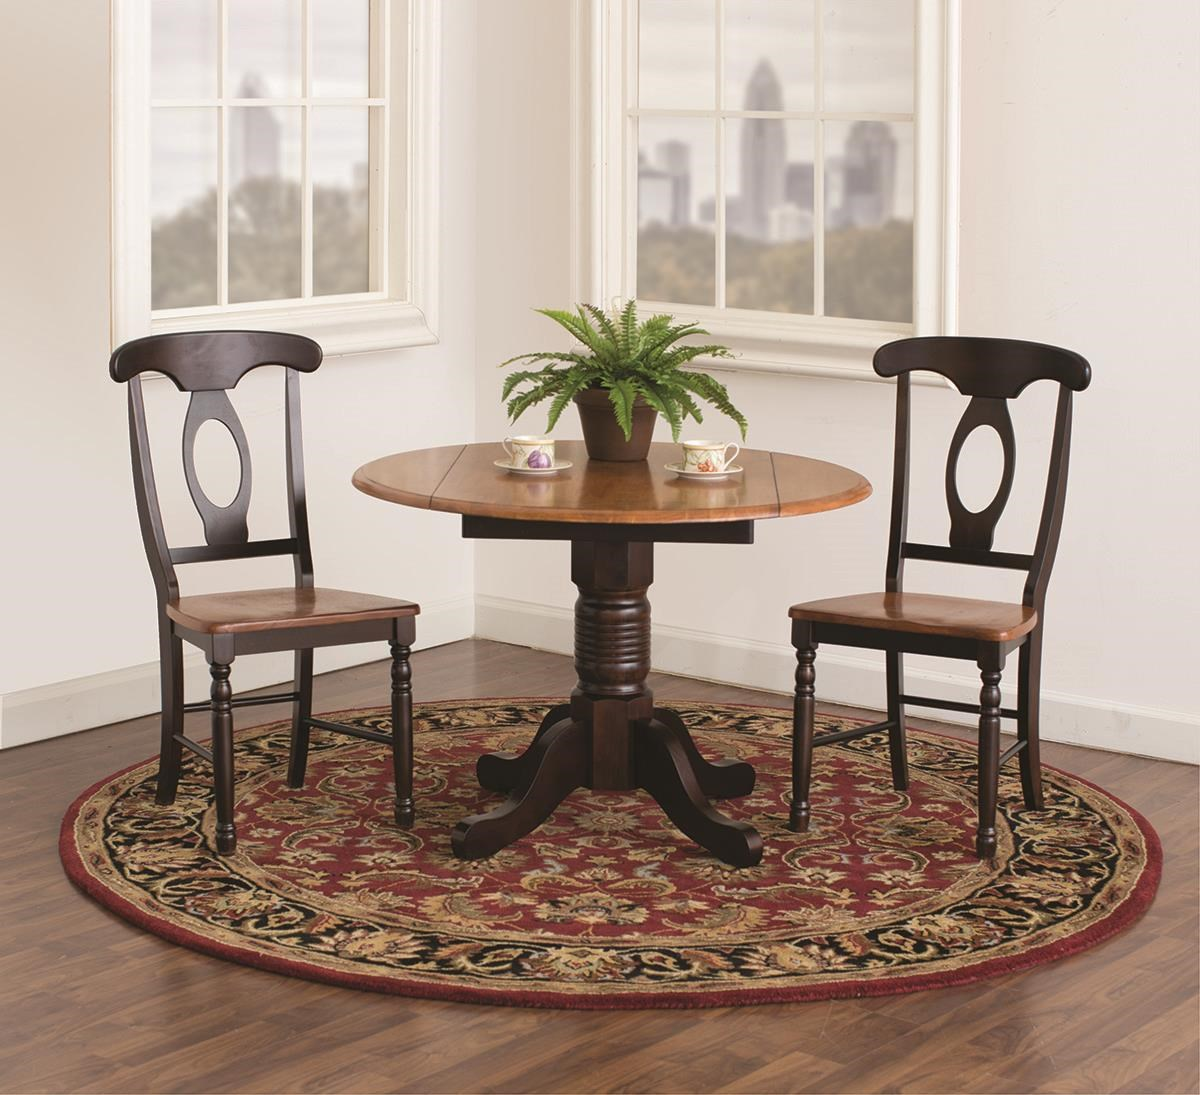 British Isles Solid Wood 3 Piece Drop Leaf Table Set by AAmerica at Darvin Furniture